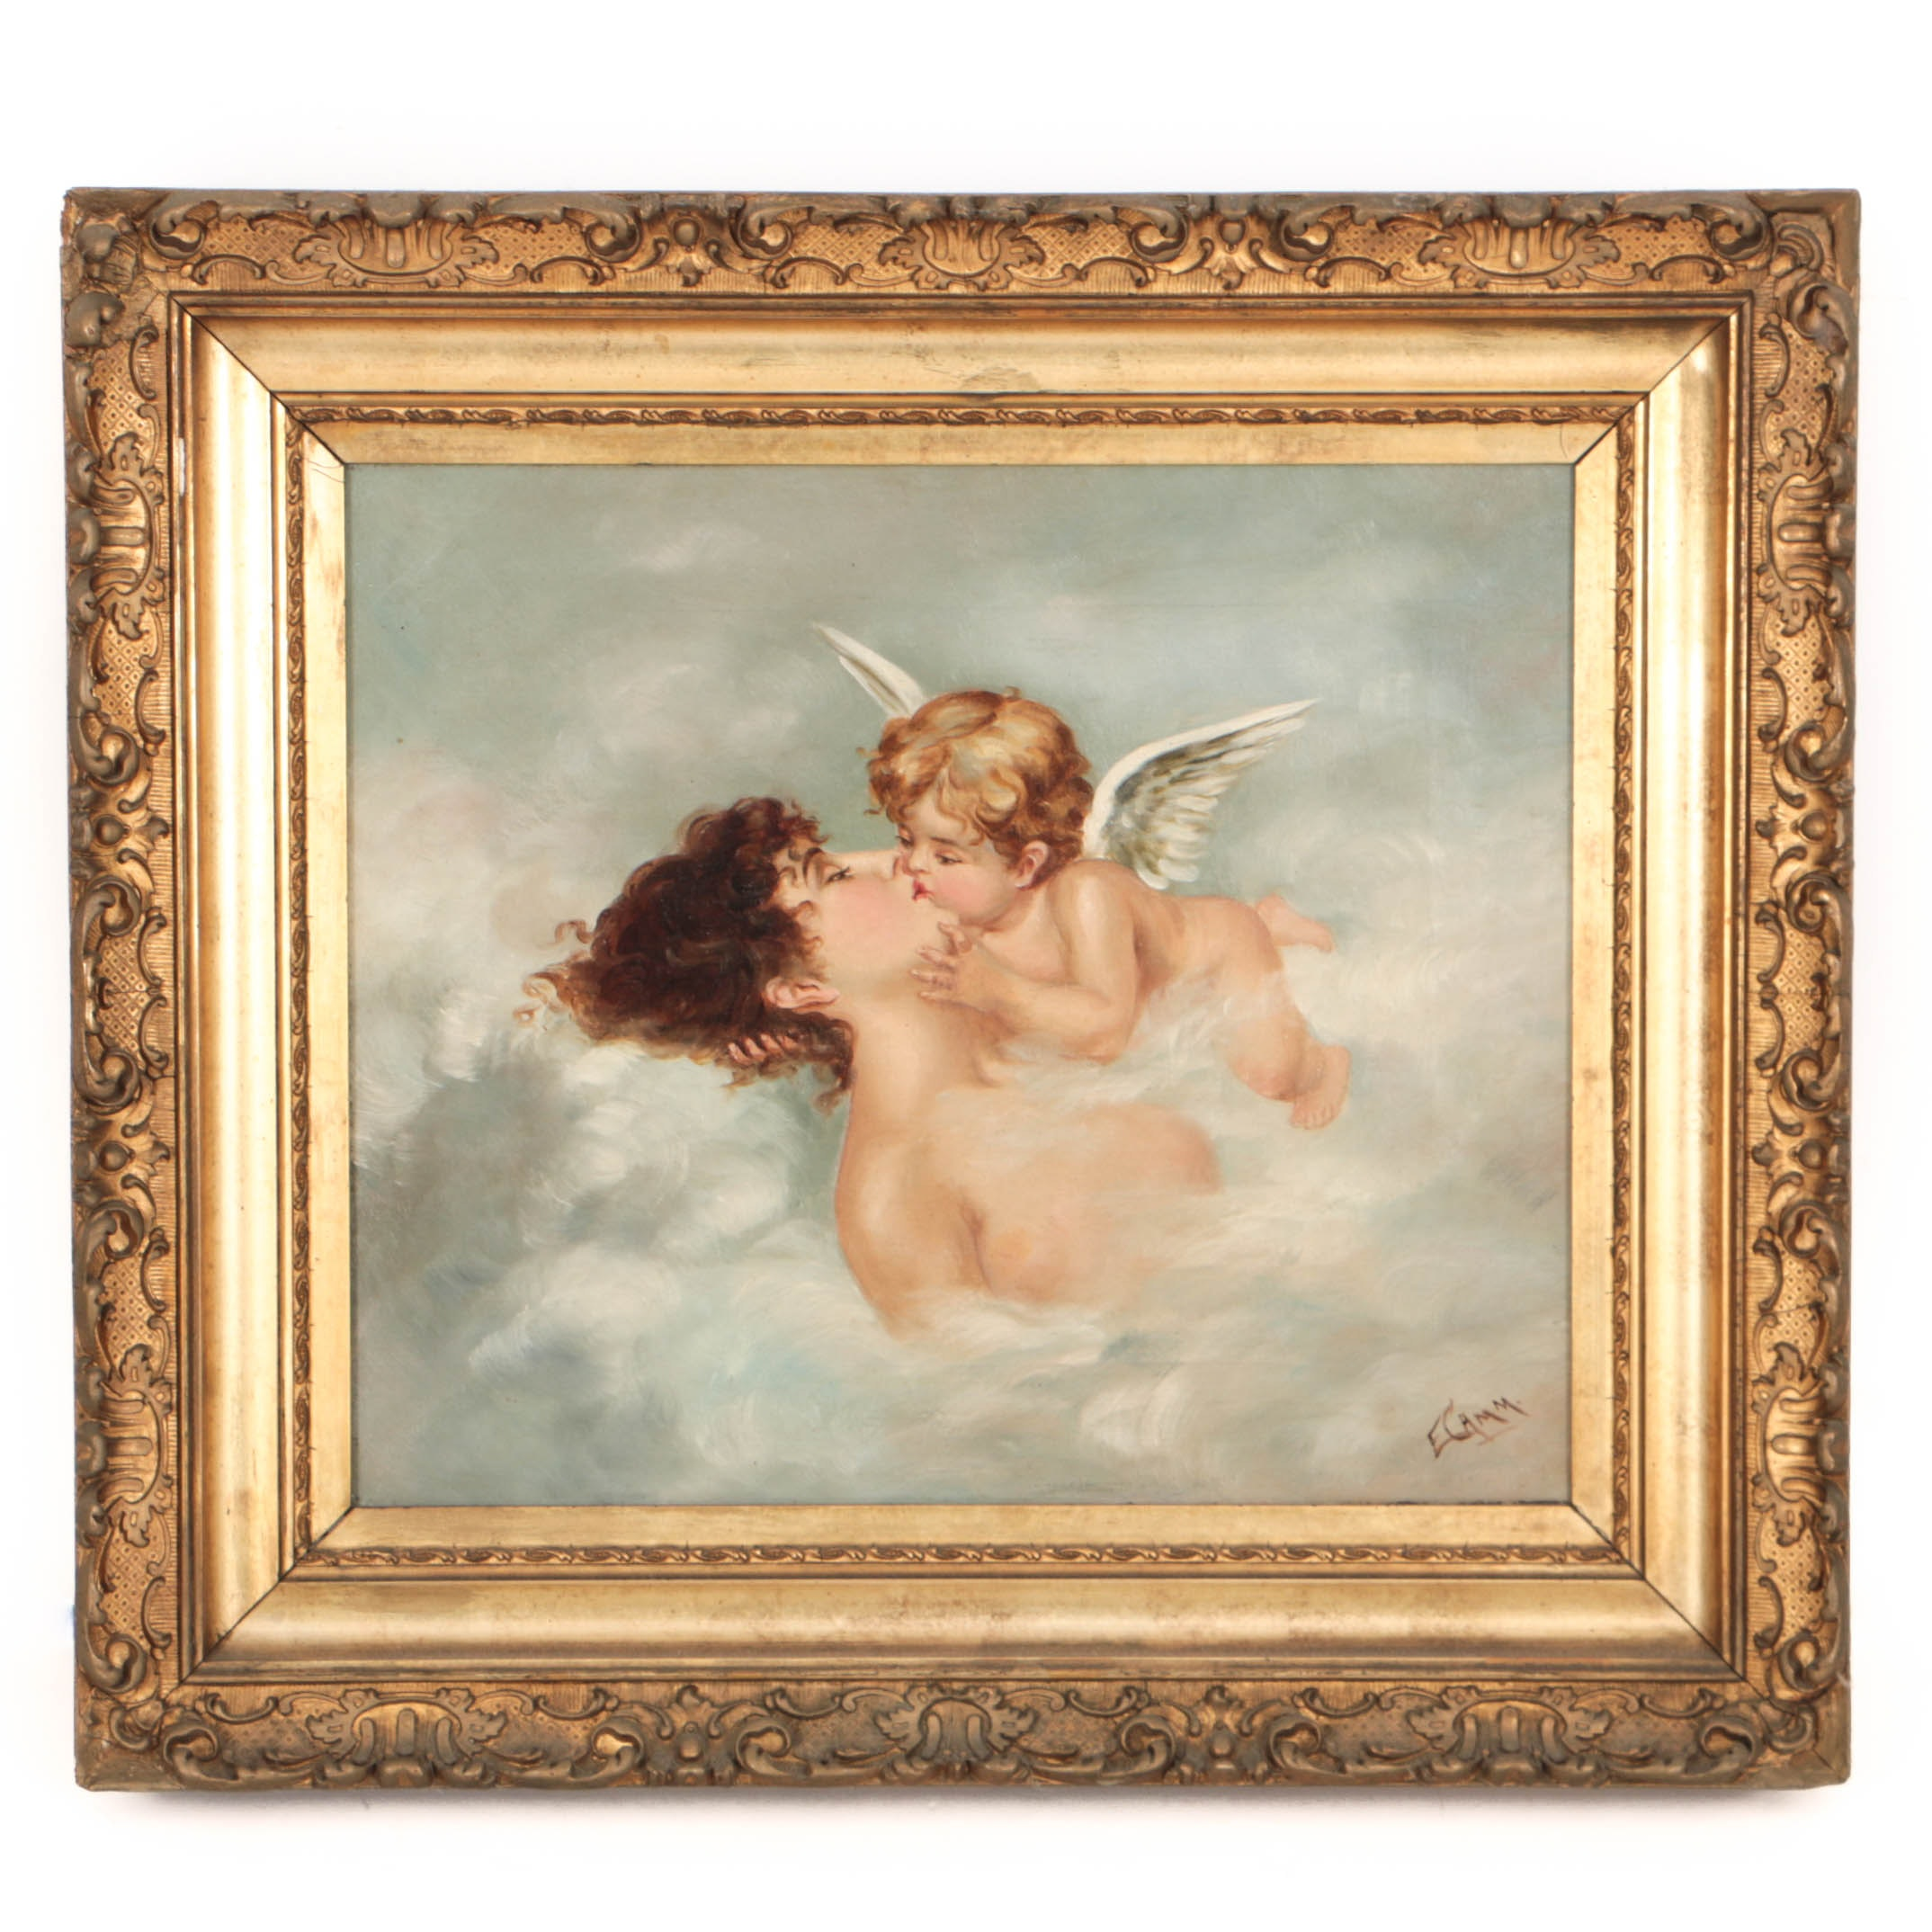 E. Camm Antique Oil Painting on Canvas Woman with a Cherub